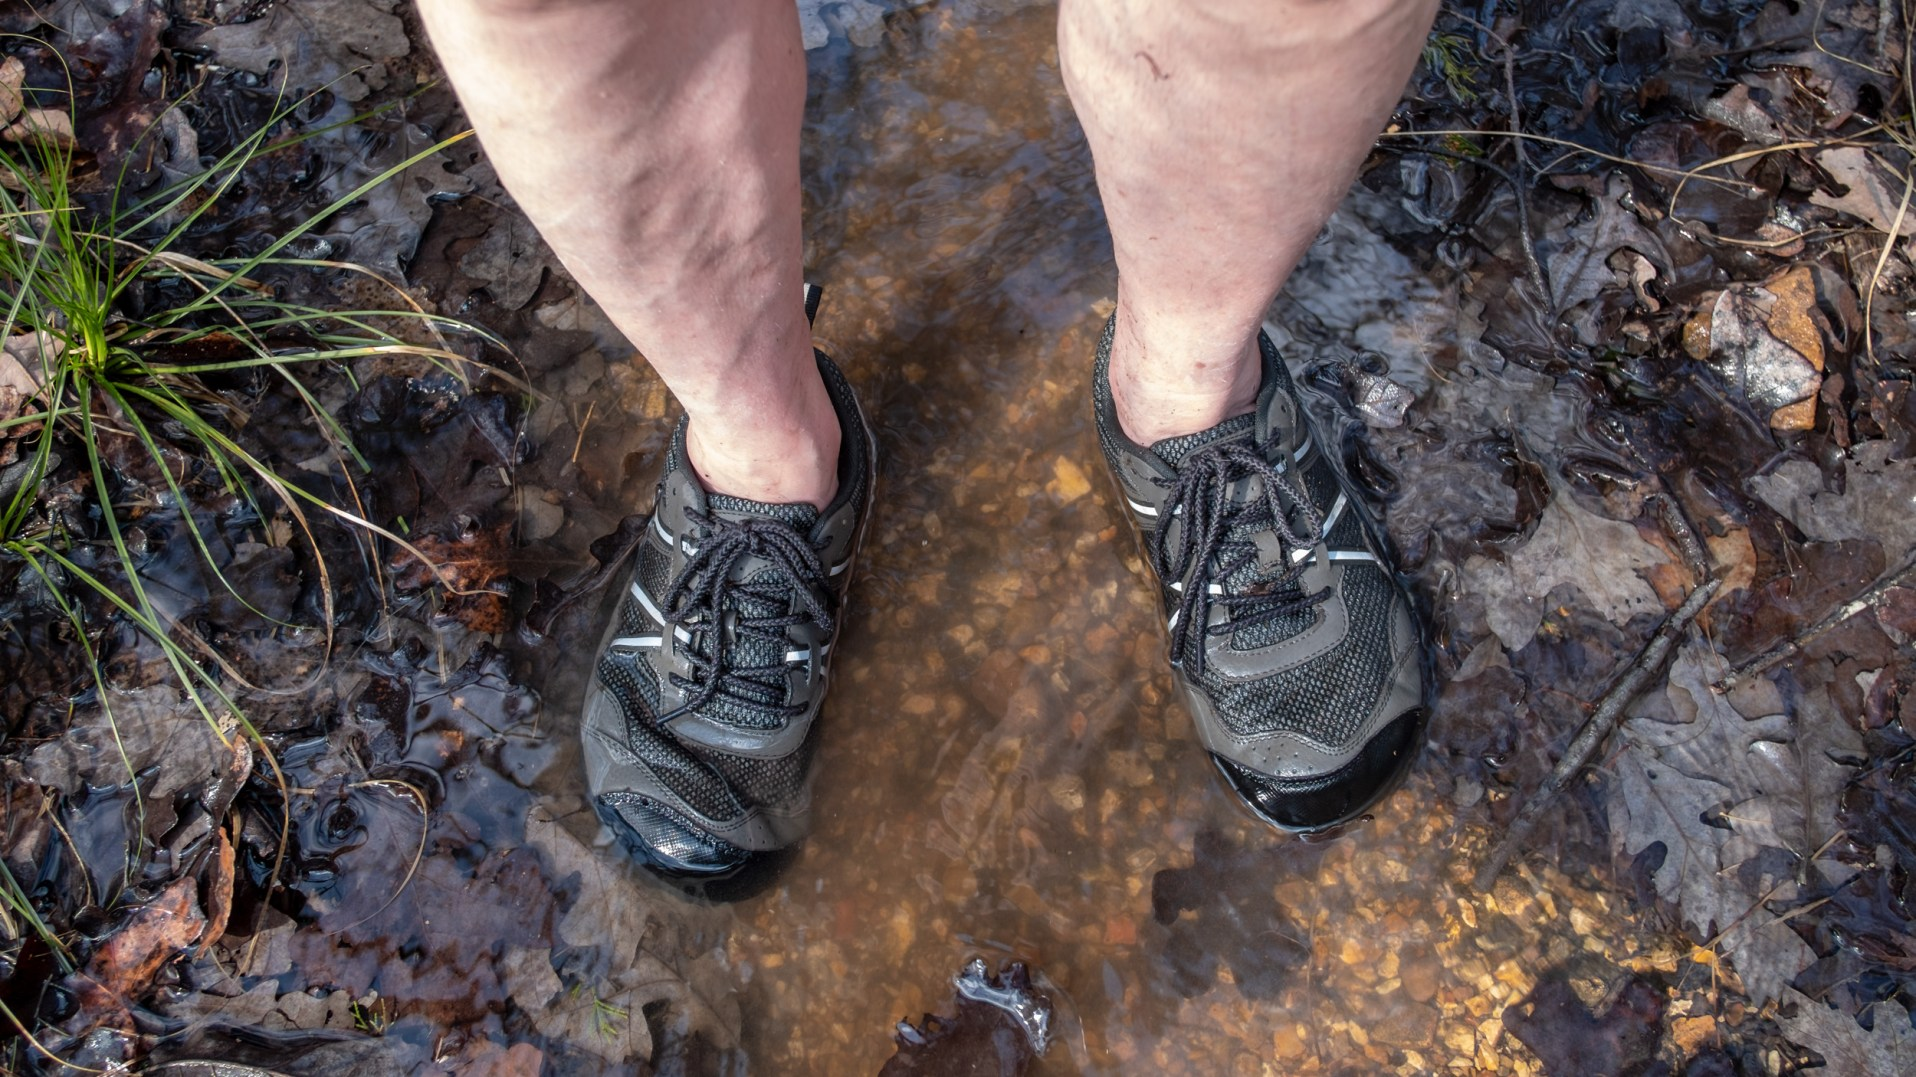 Testing My Hiking Shoes -- Xero TerraFlex hiking shoes -- in some very wet conditions. I didn't call this 'My wet feet trip' for nothing! Copyright © 2019 Gary Allman, all rights reserved.